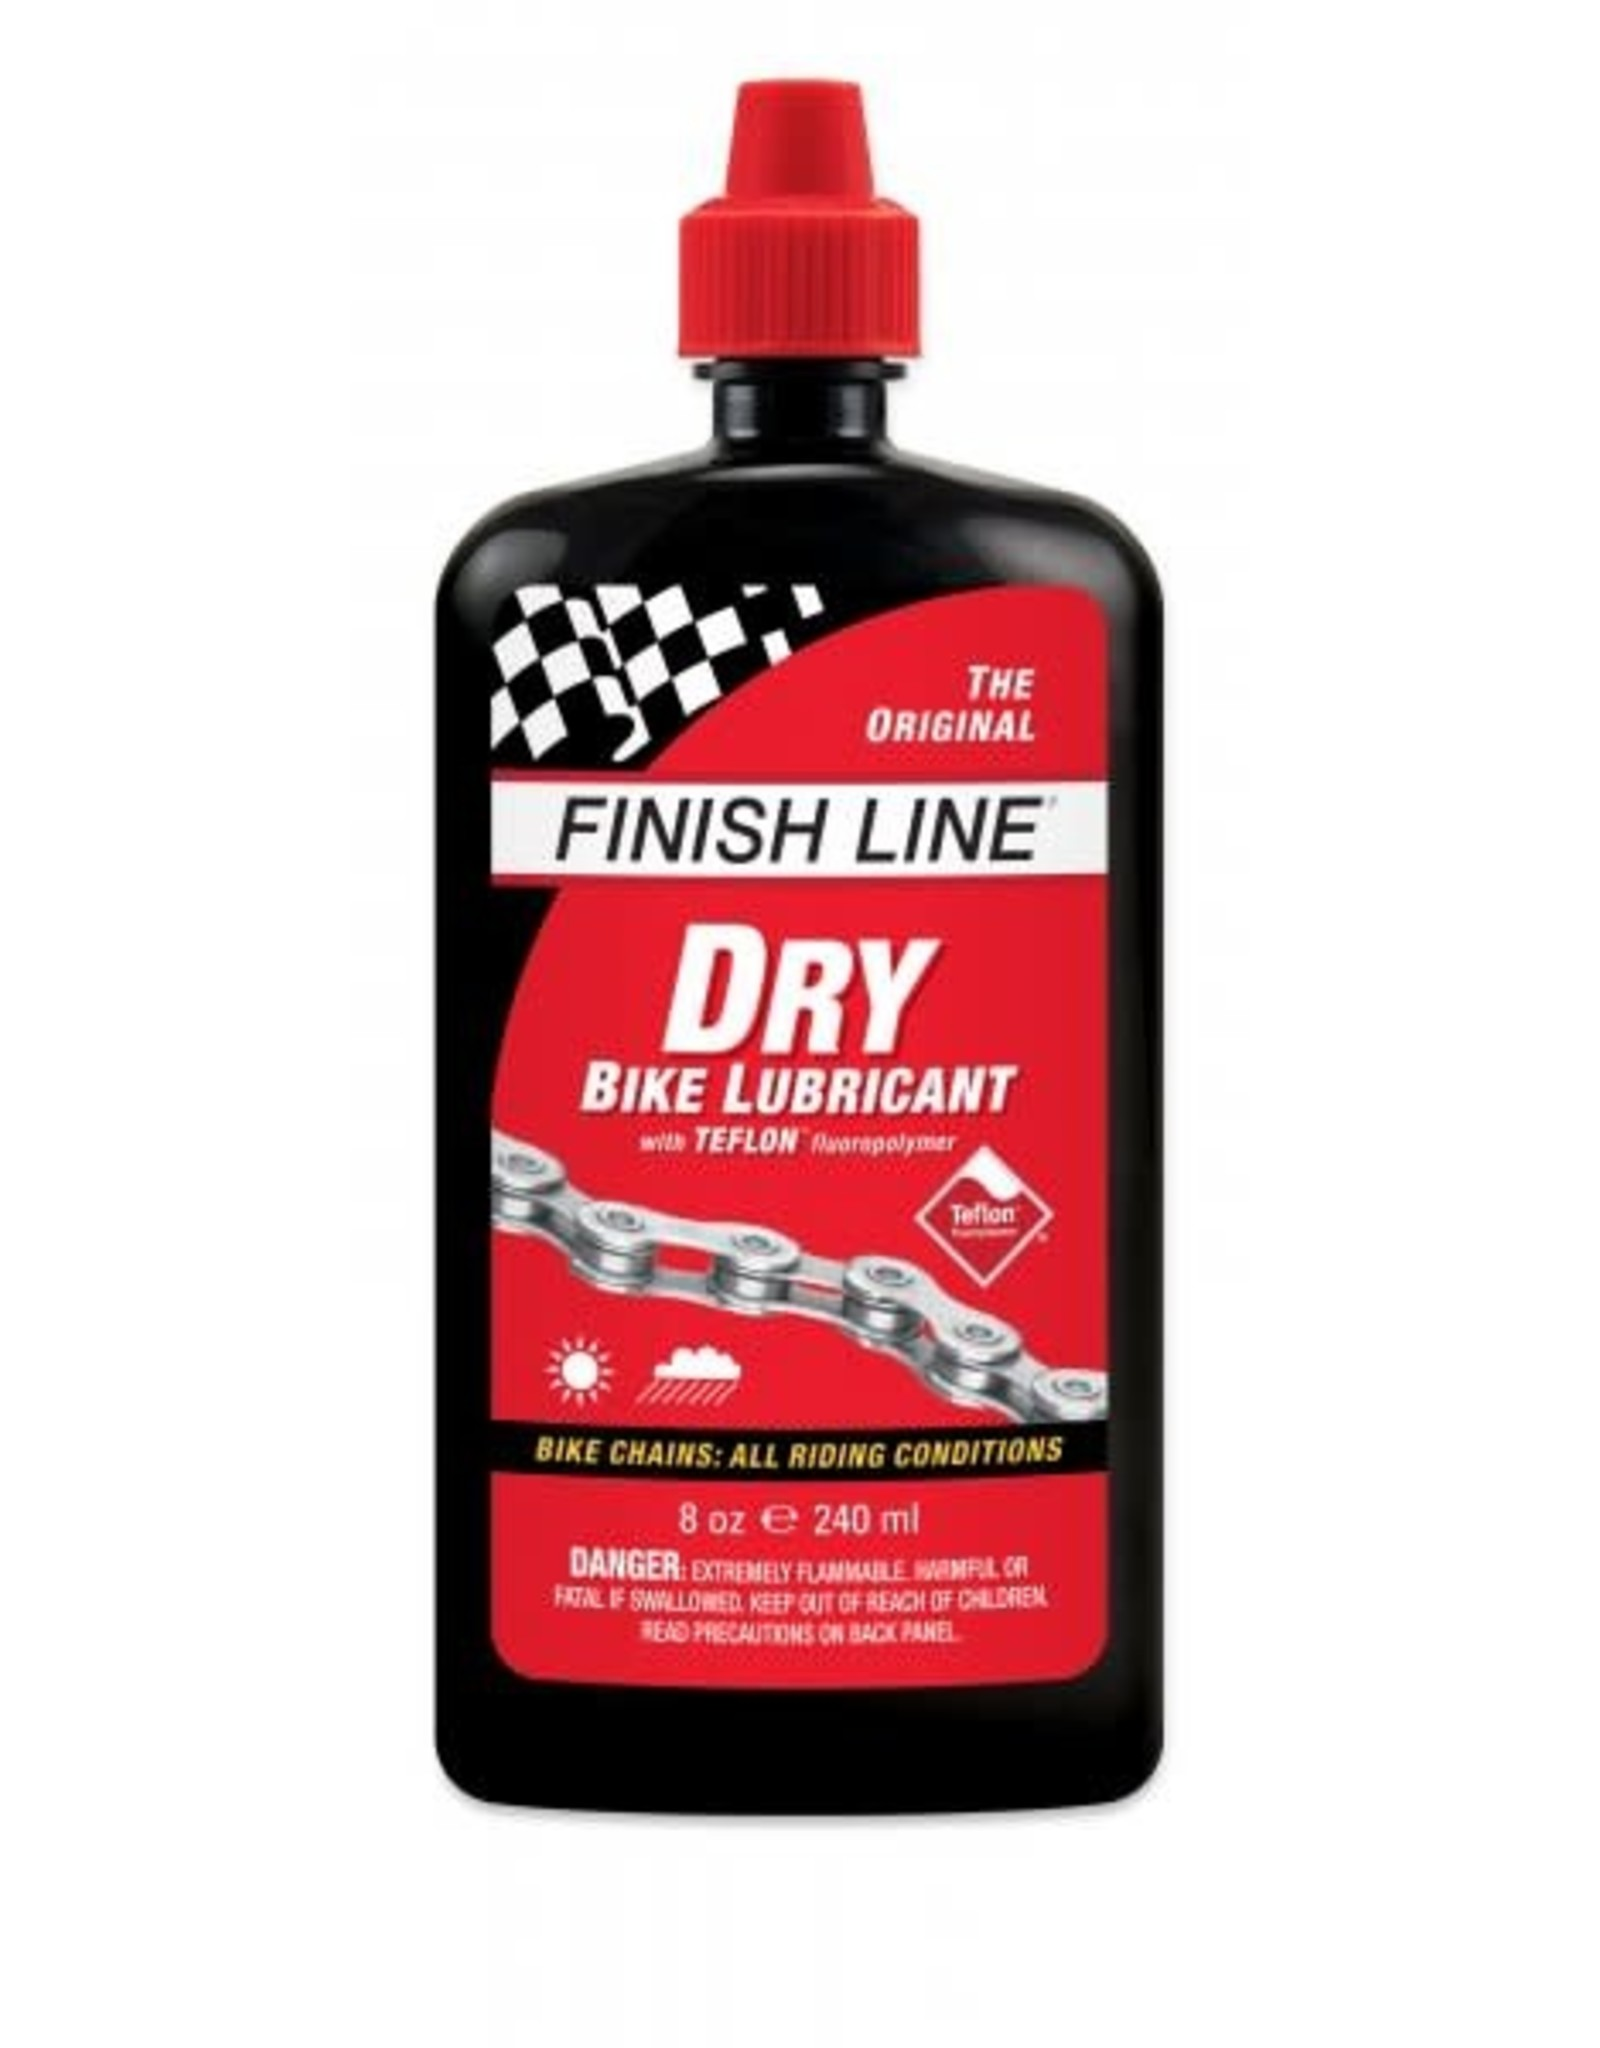 Finish Line Lubricant Finish Line Dry every condi.